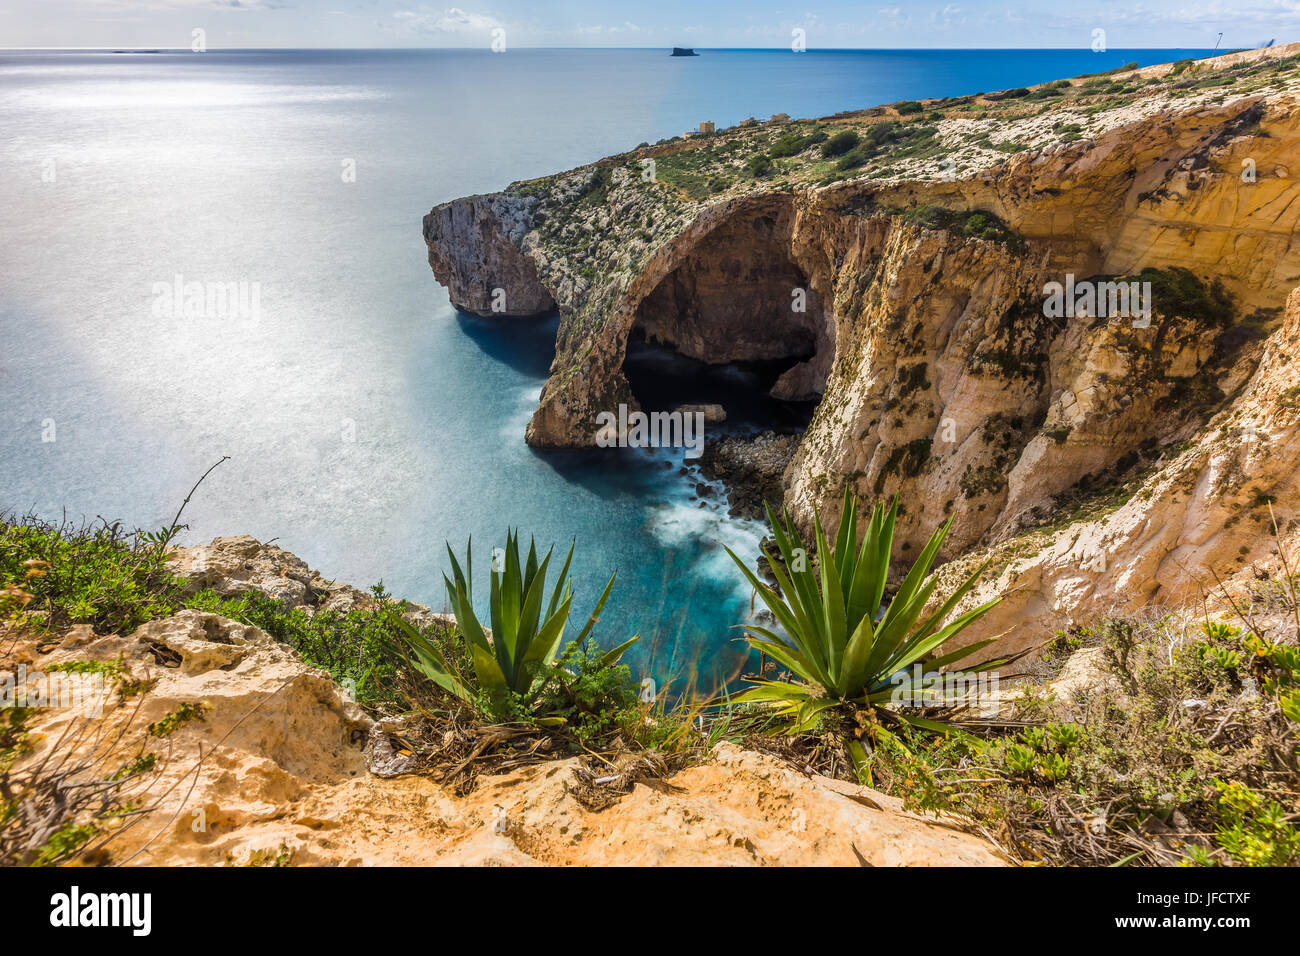 Malta - The famous arch of Blue Grotto cliffs with green leaves - Stock Image